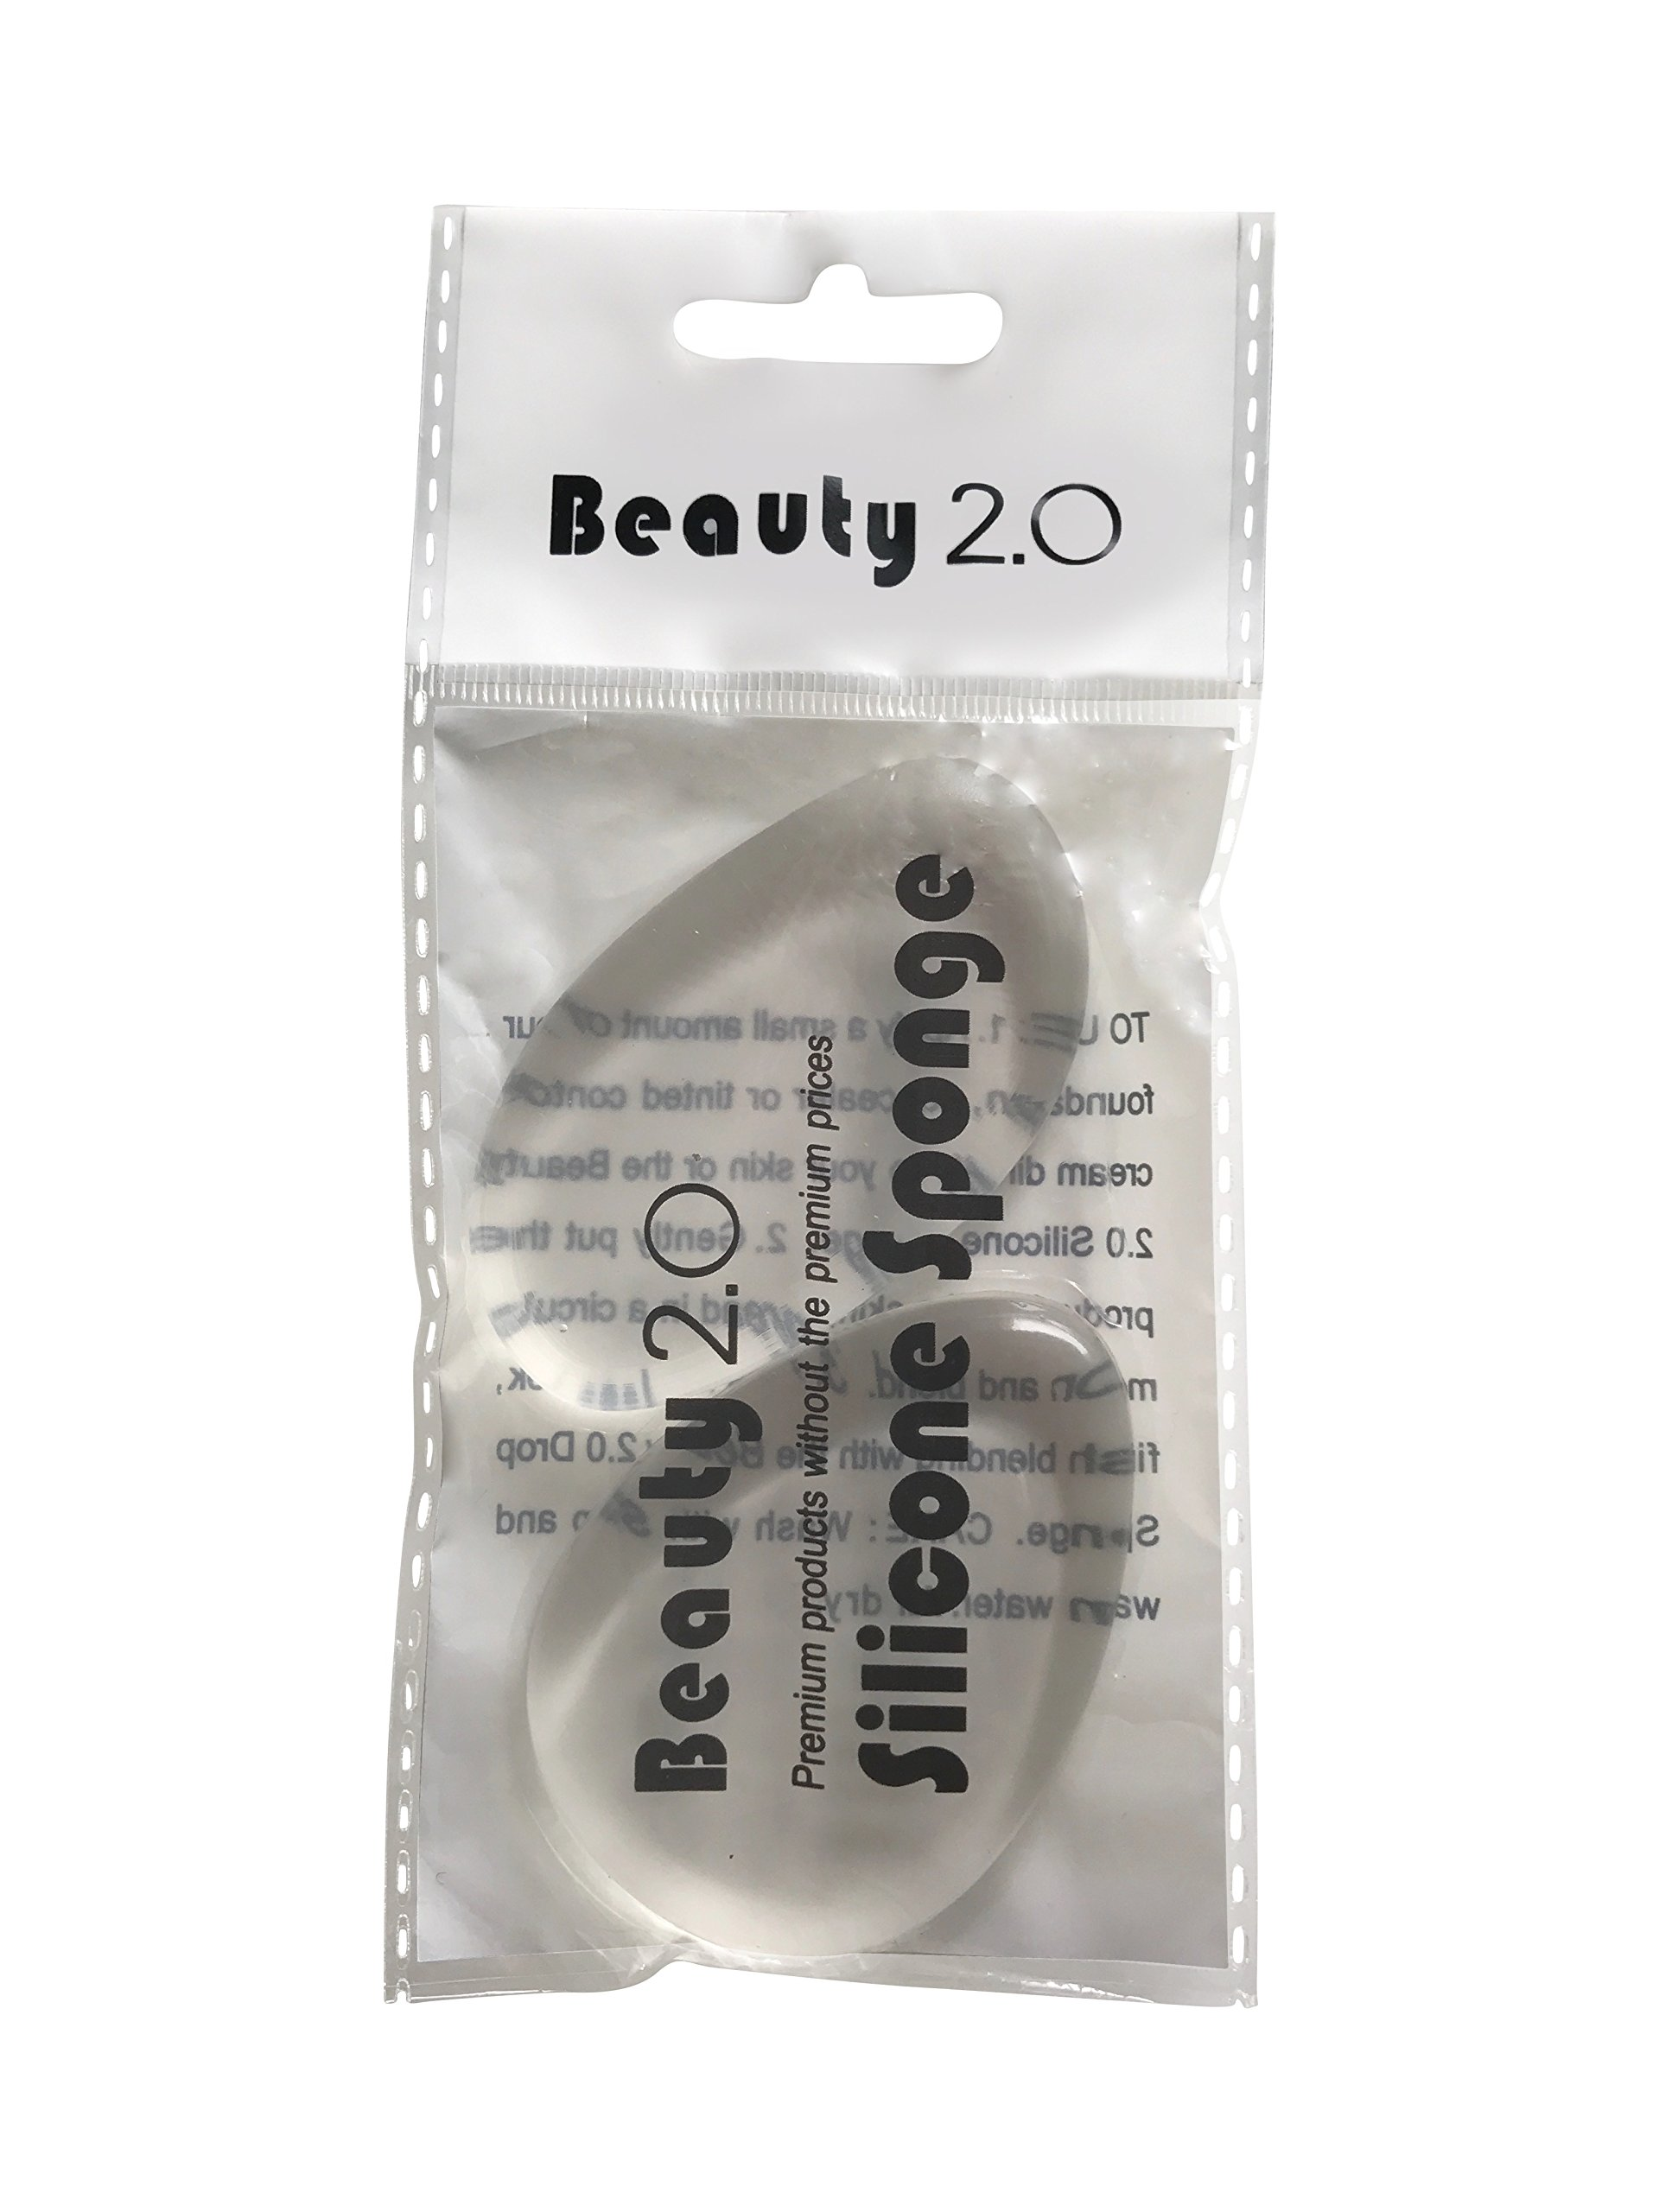 2-Pack Silicone Makeup Sponge by Beauty 2.0 - Premium Applicator for Foundation & Concealer